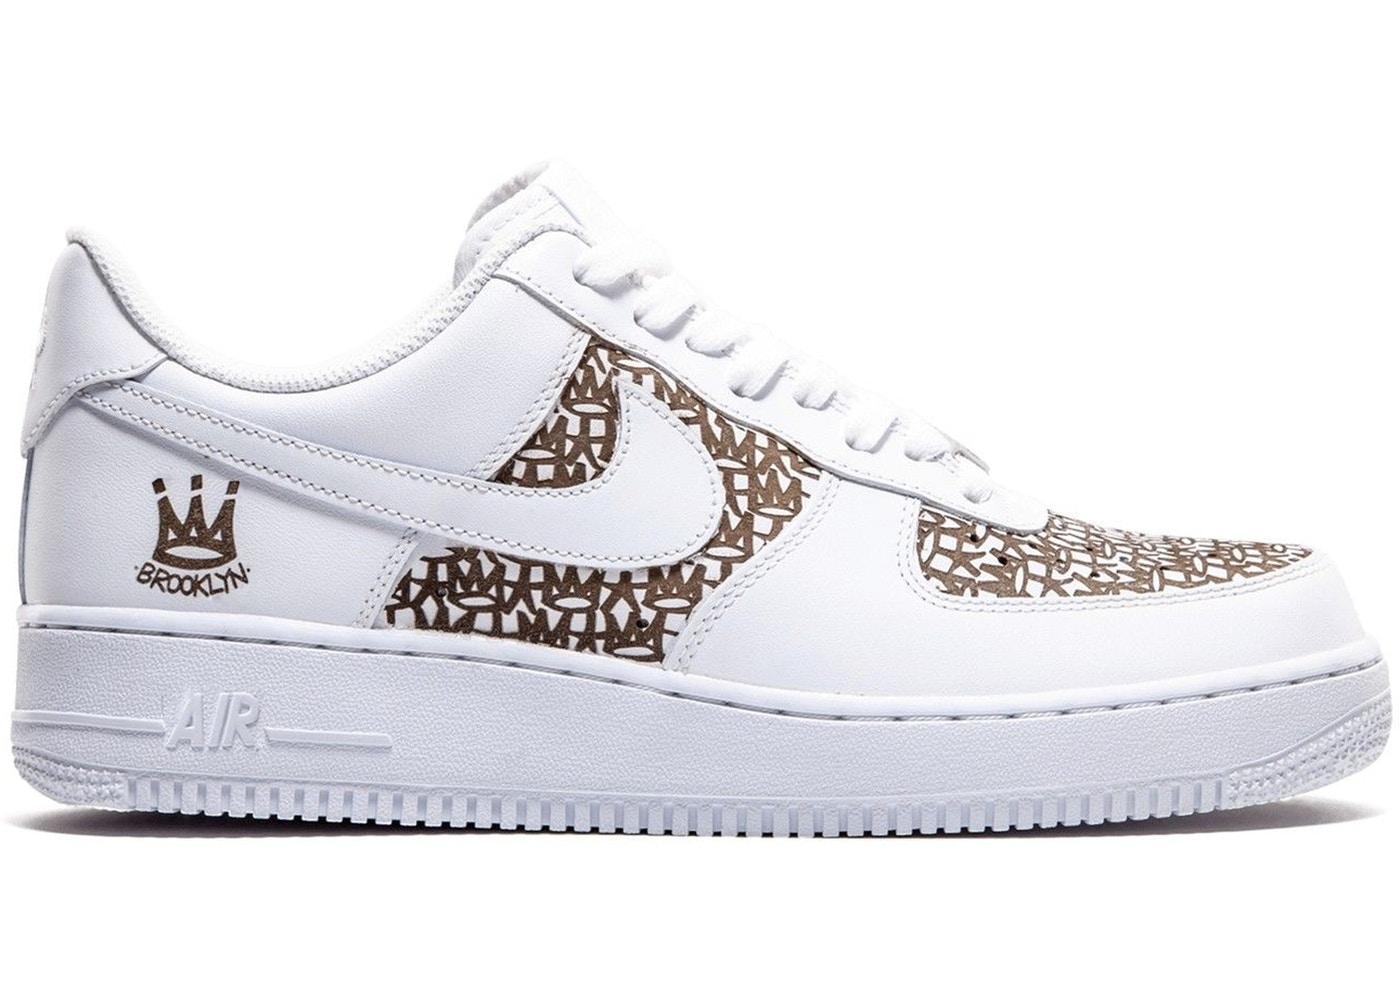 Nike Air Force 1 Low Haze NYC Laser Sneakers (White/White)